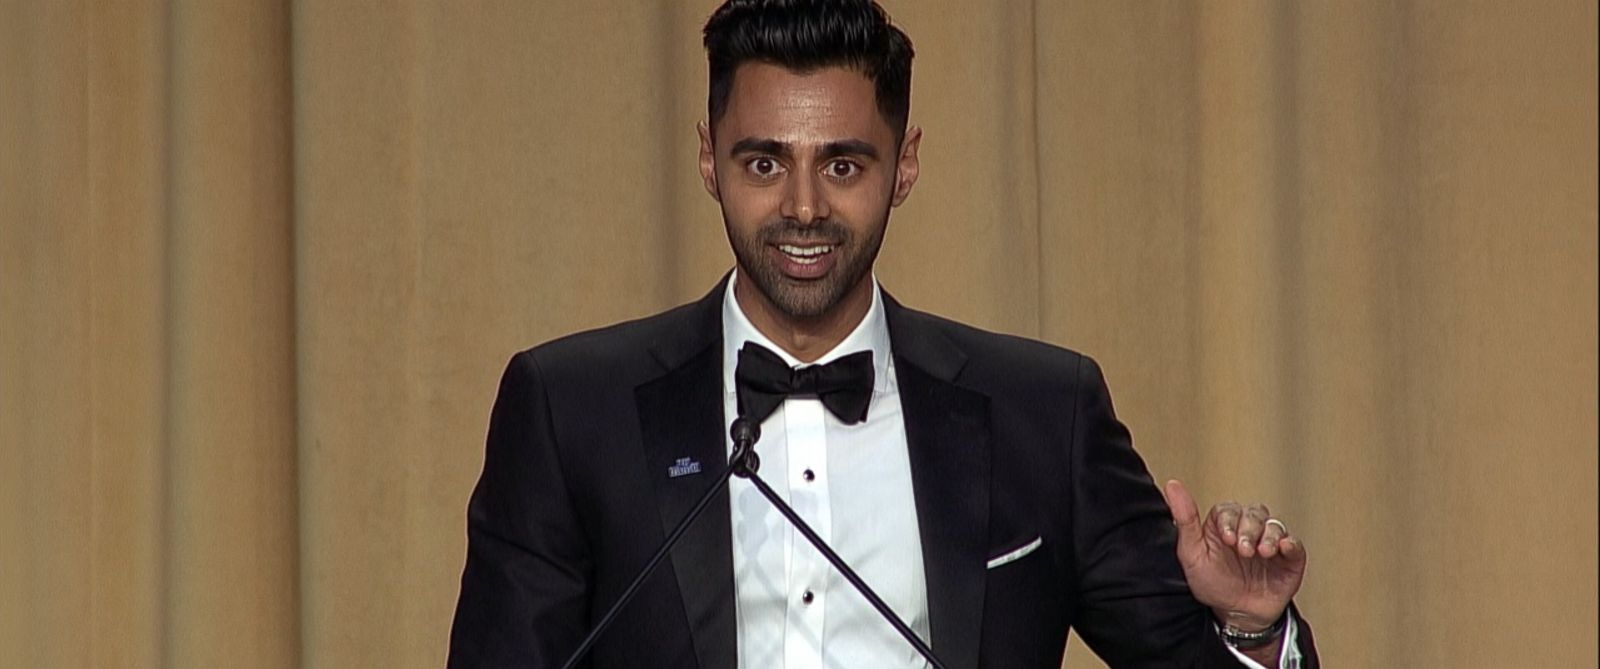 VIDEO: Hasan Minhaj aimed his jokes at the Trump administration, which wasn't present for the annual event.